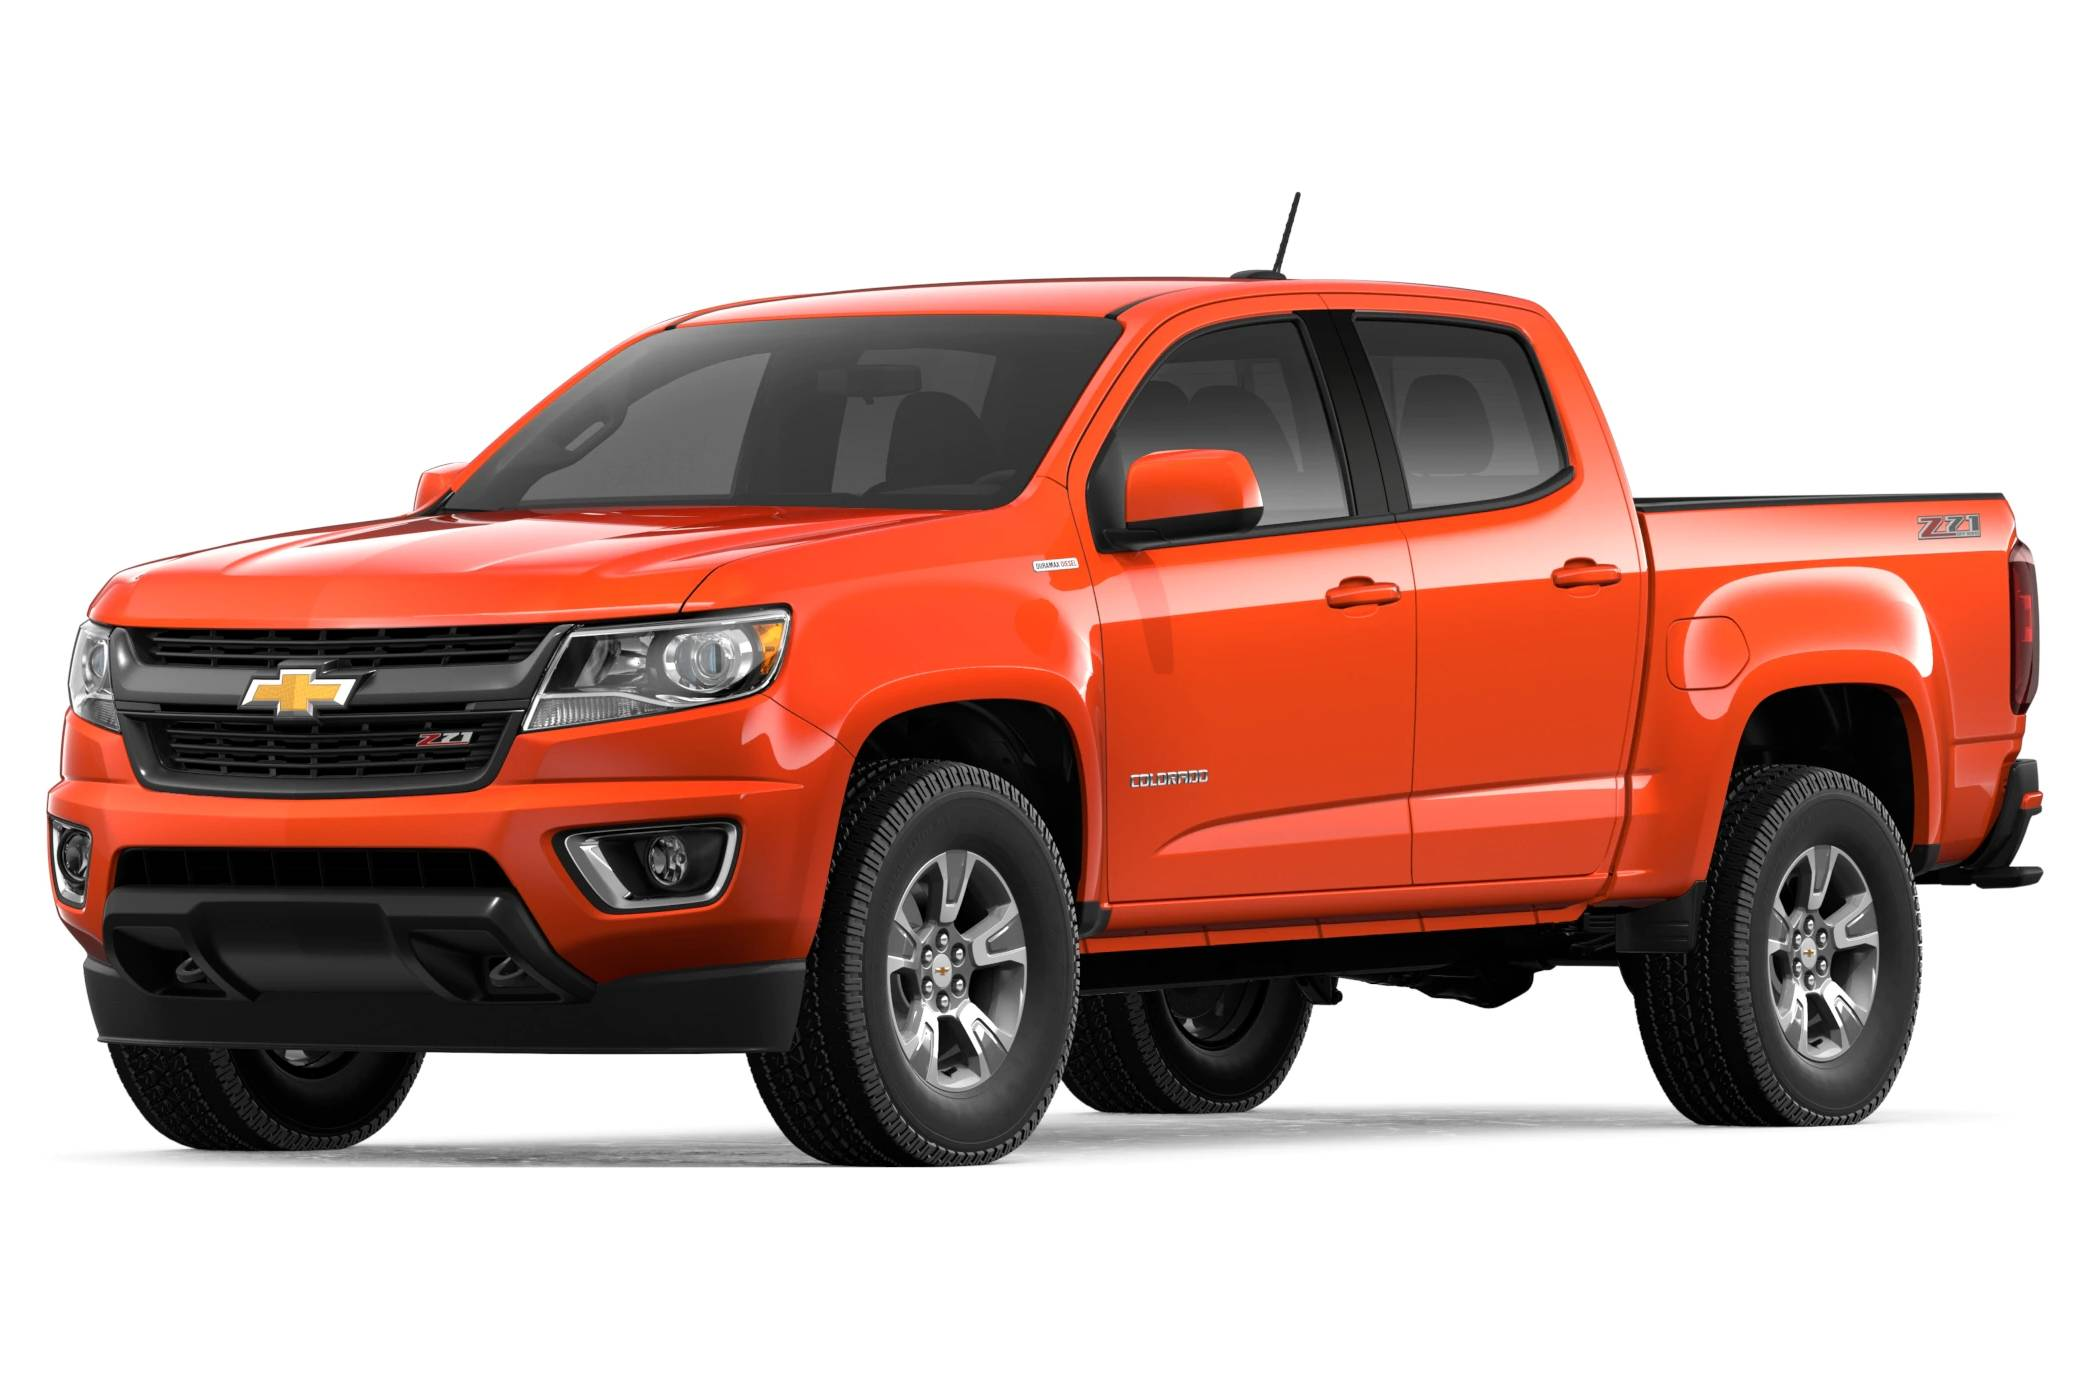 2017 Chevrolet Colorado 2.8 LTZ